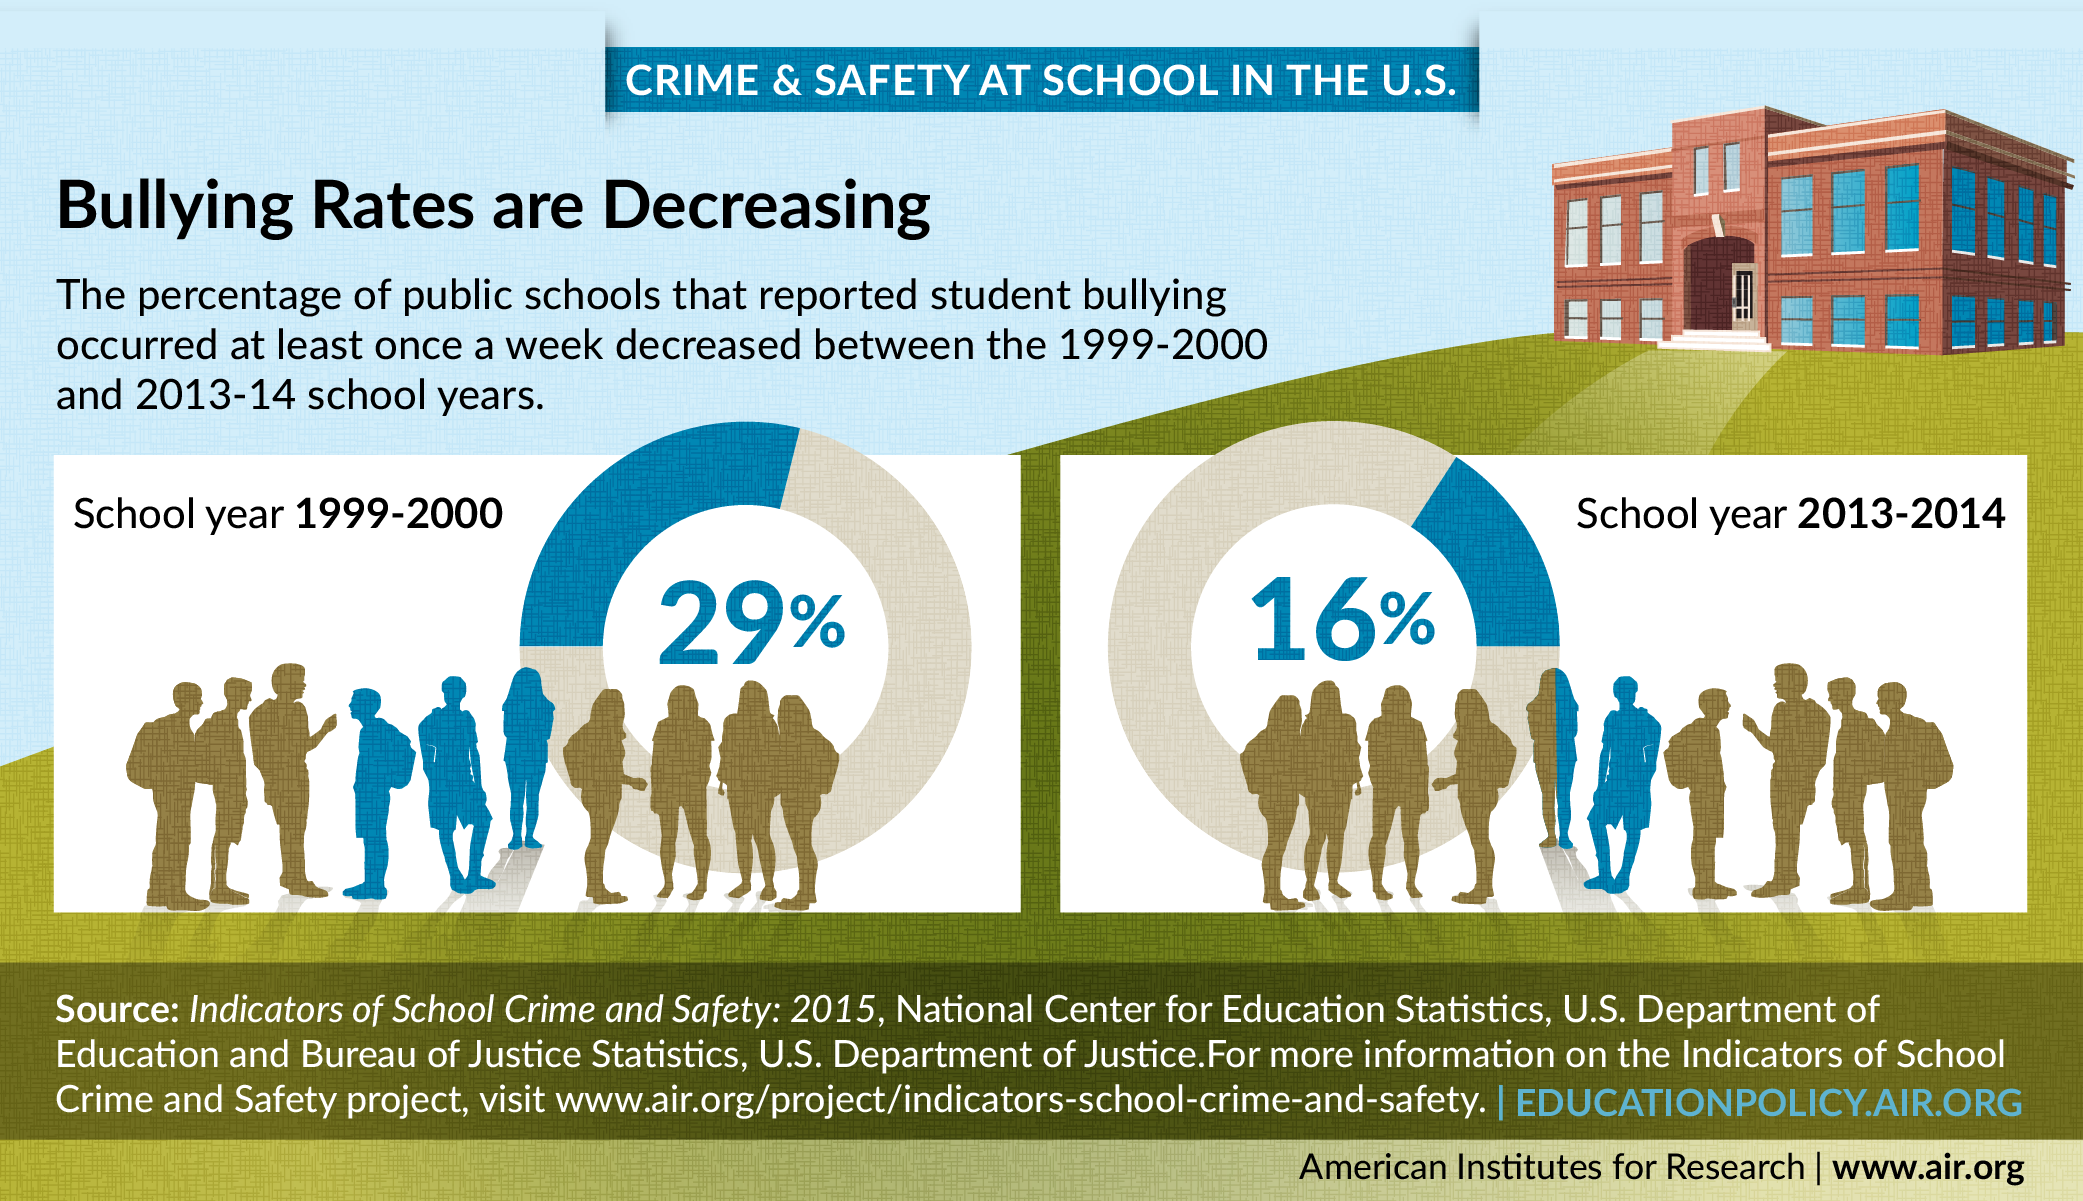 Infographic shows the percentage of public schools that reported student bullying occurred at least once a week decreased between the 1999-2000 and 2013-14 school years.